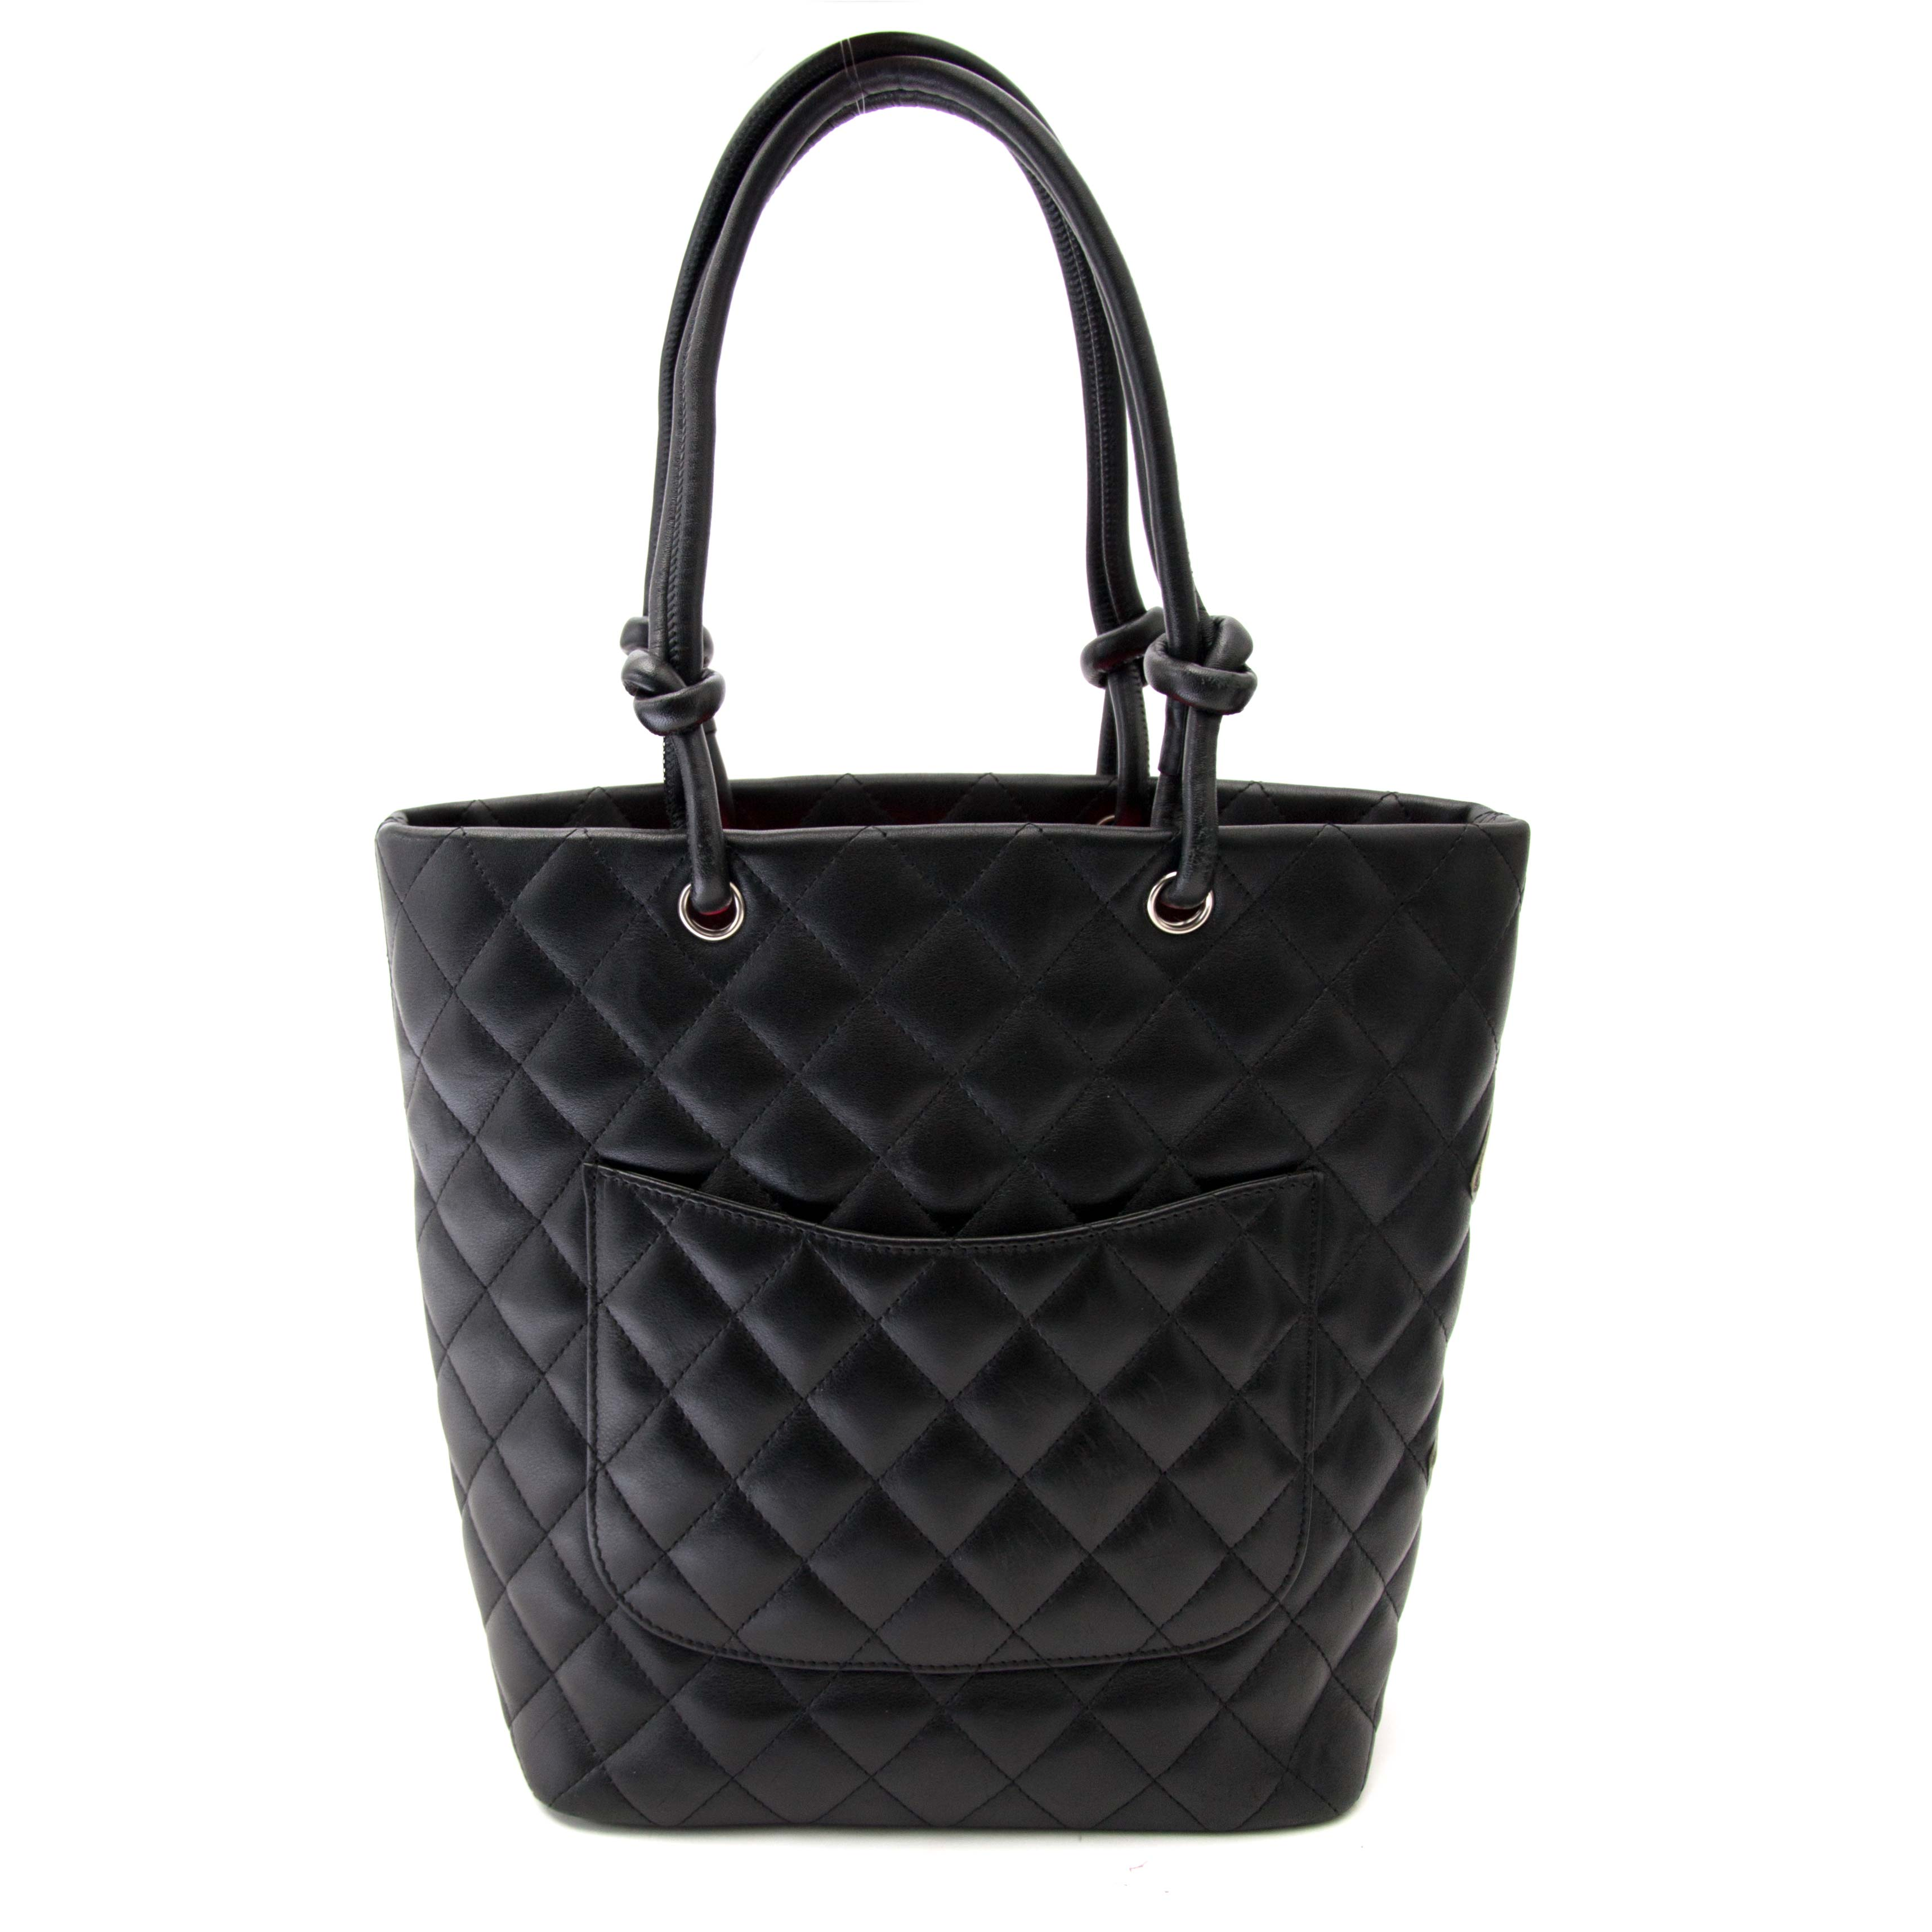 shop veilig online aan de beste prijs  Chanel Cambon Quilted Black And White Small Tote